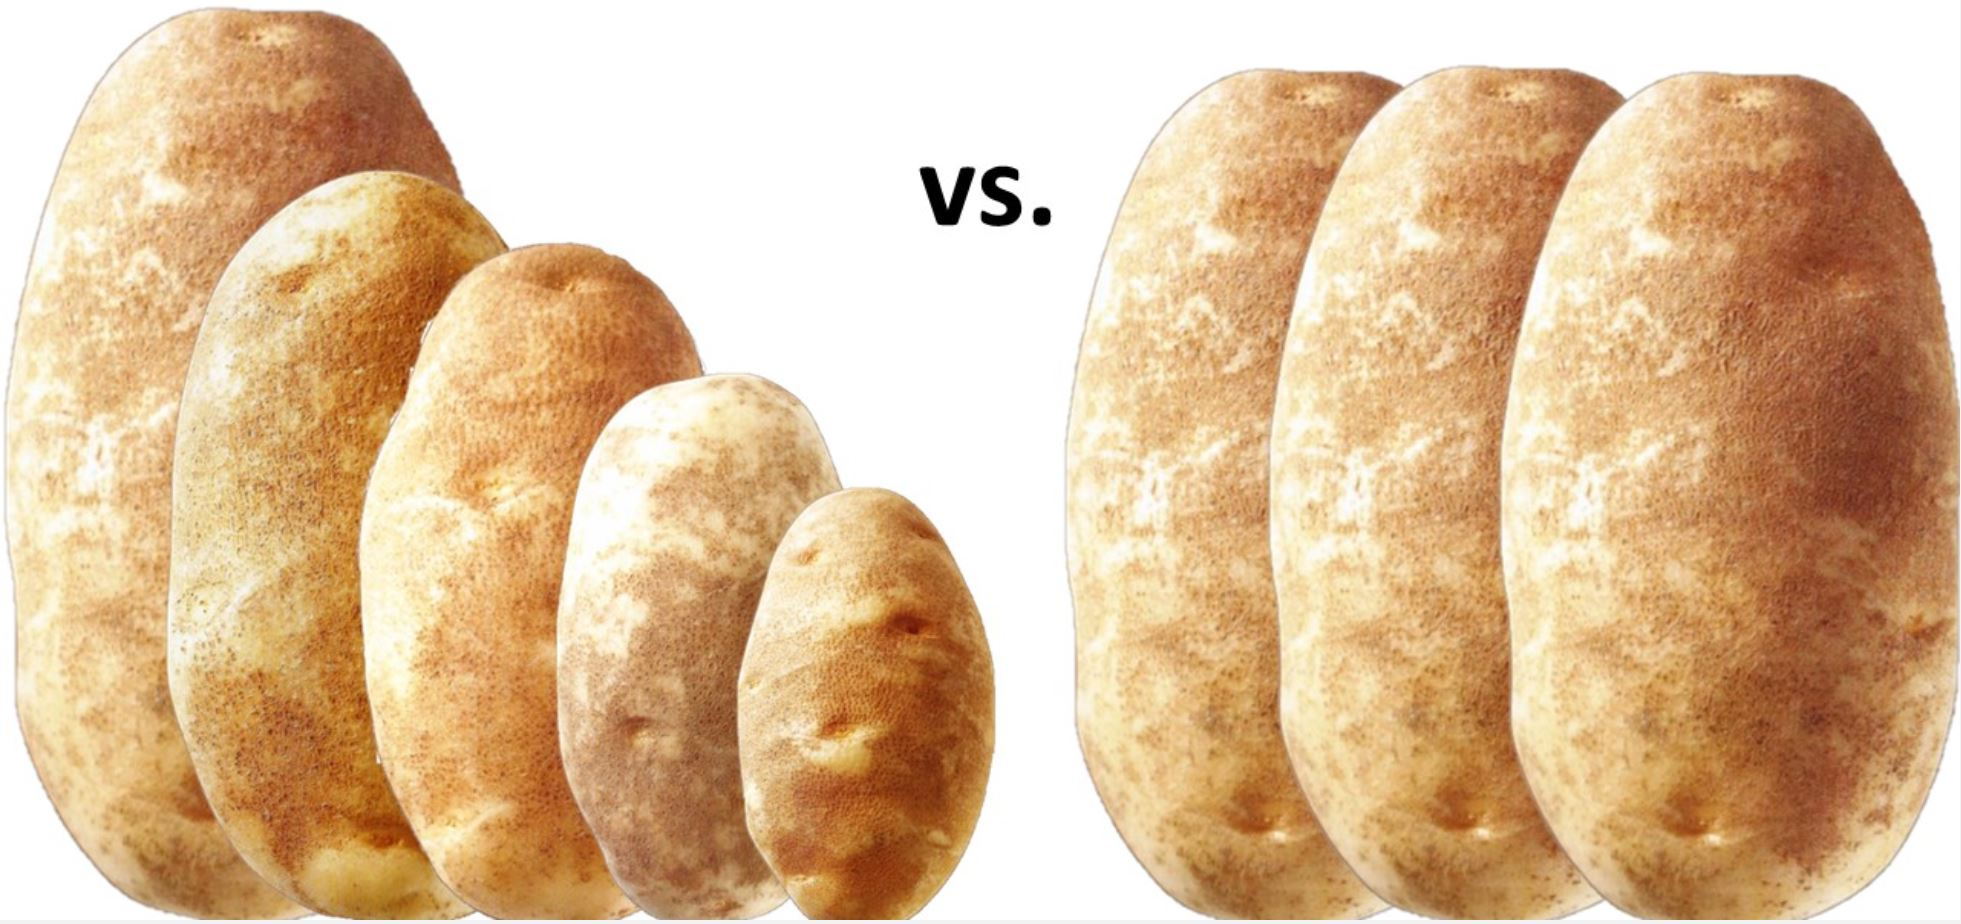 Big Potatoes vs Small Potatoes pound comparison